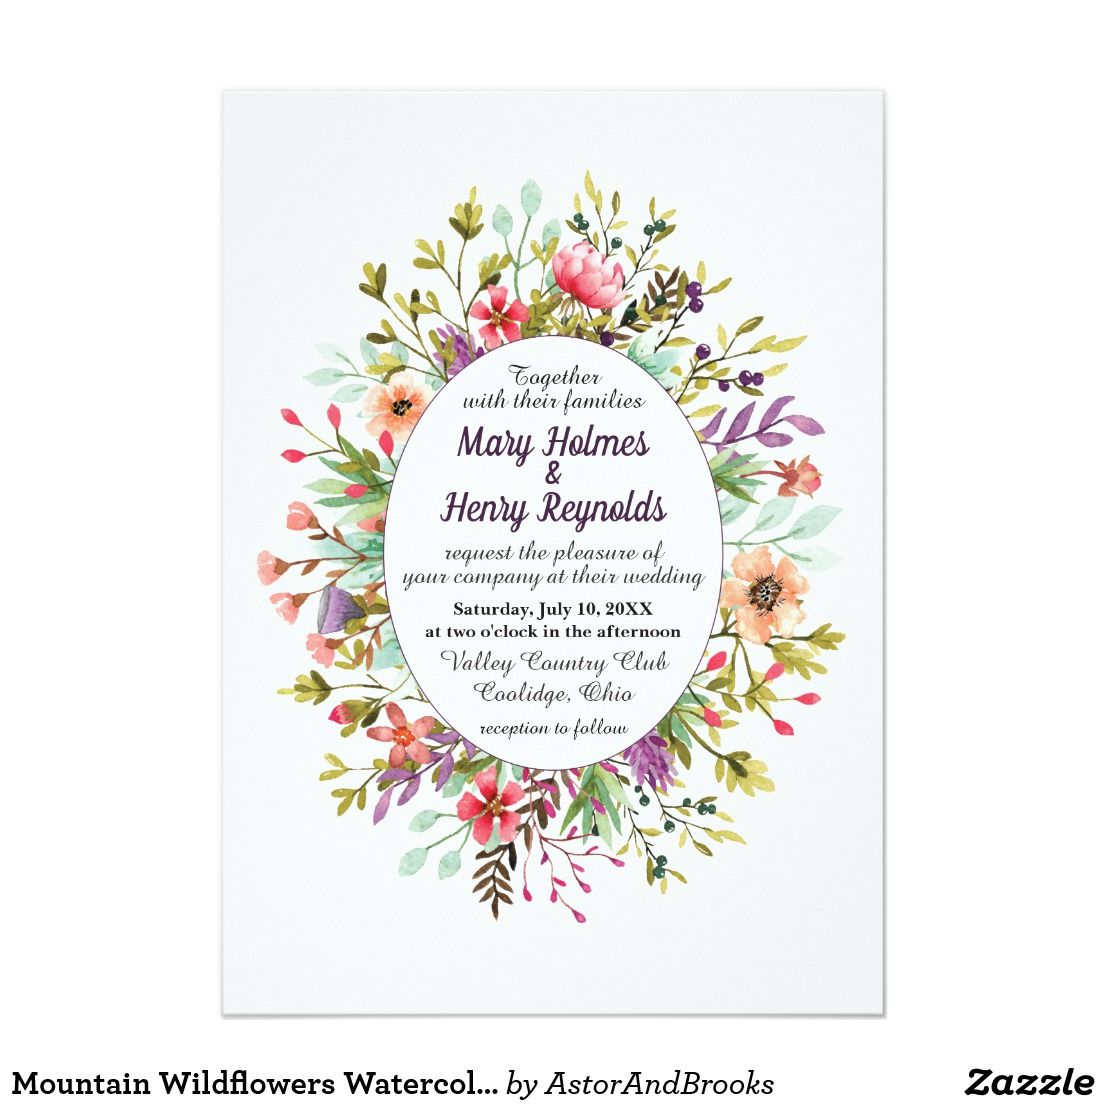 Mountain Wildflowers Watercolor Wedding Invitation